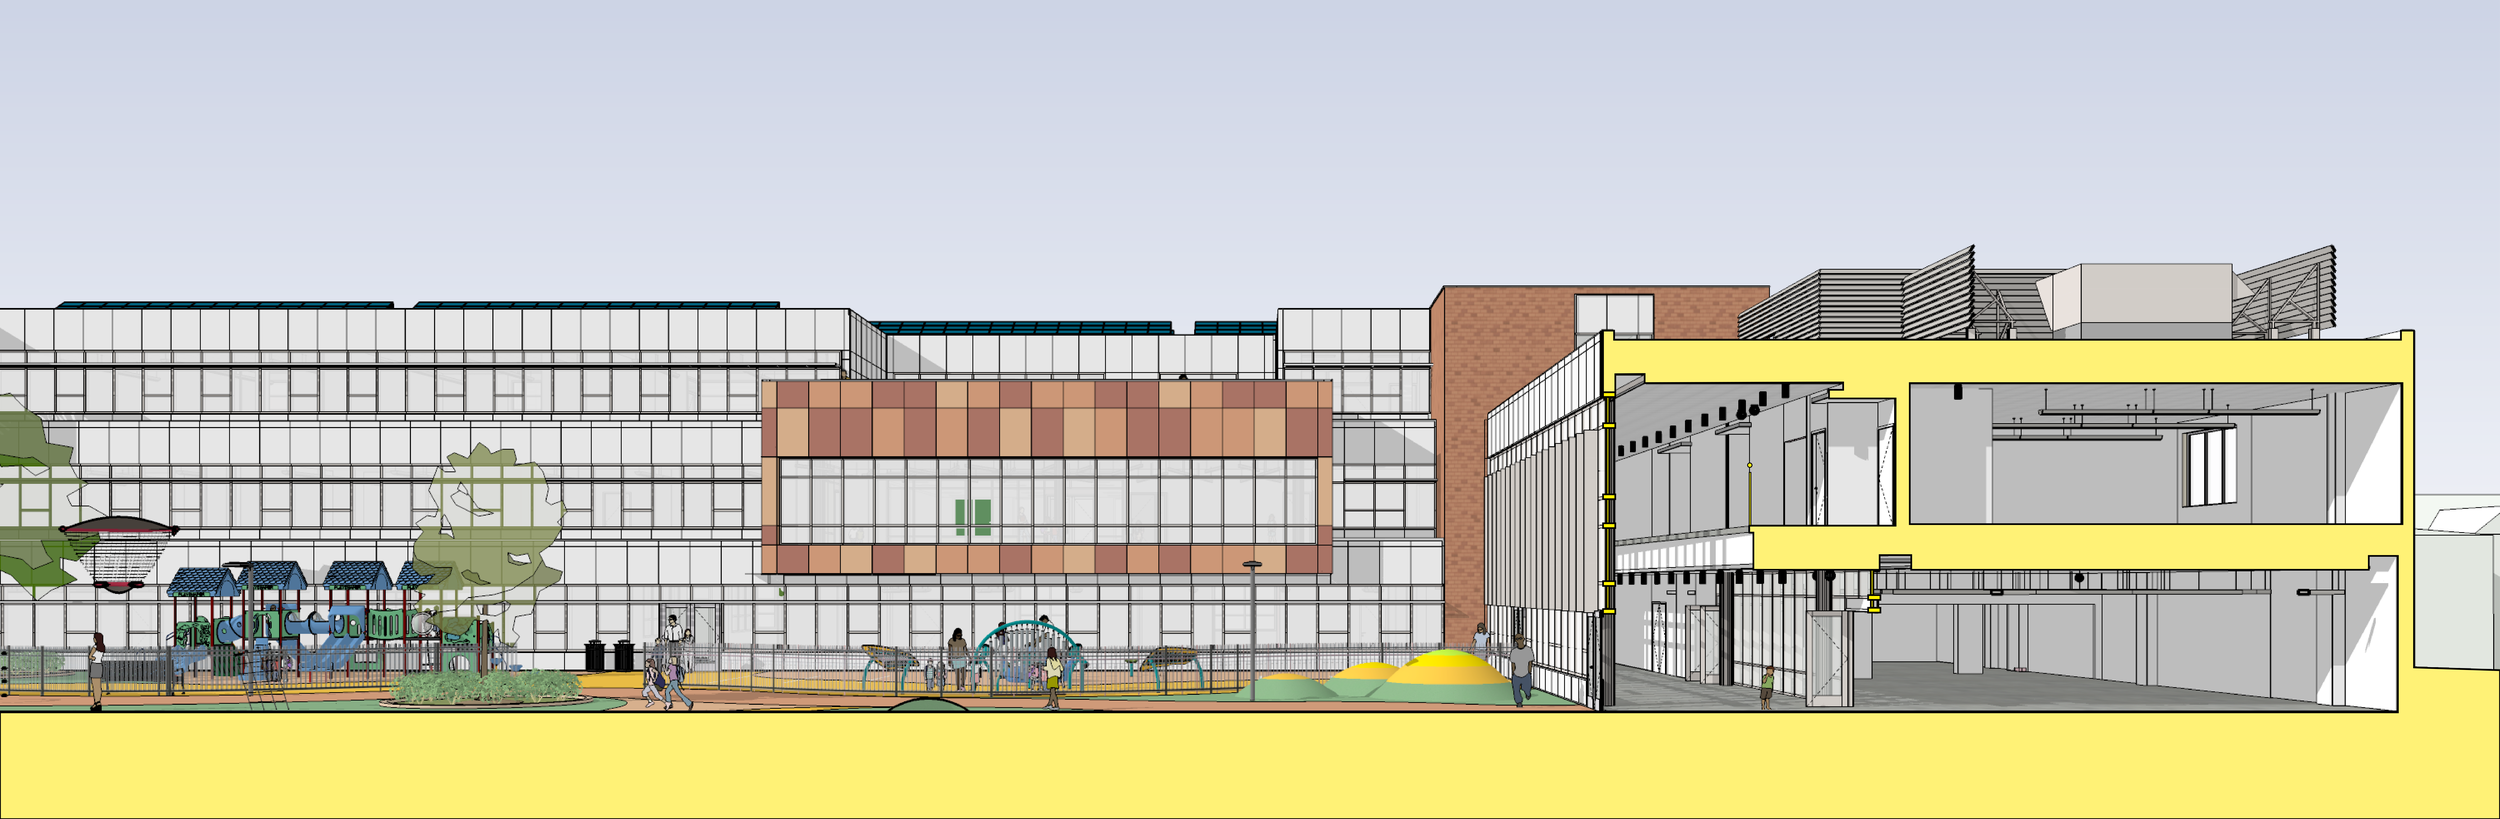 03.27.17 _ Orr Elementary-SECTION-YELLOW-01.png